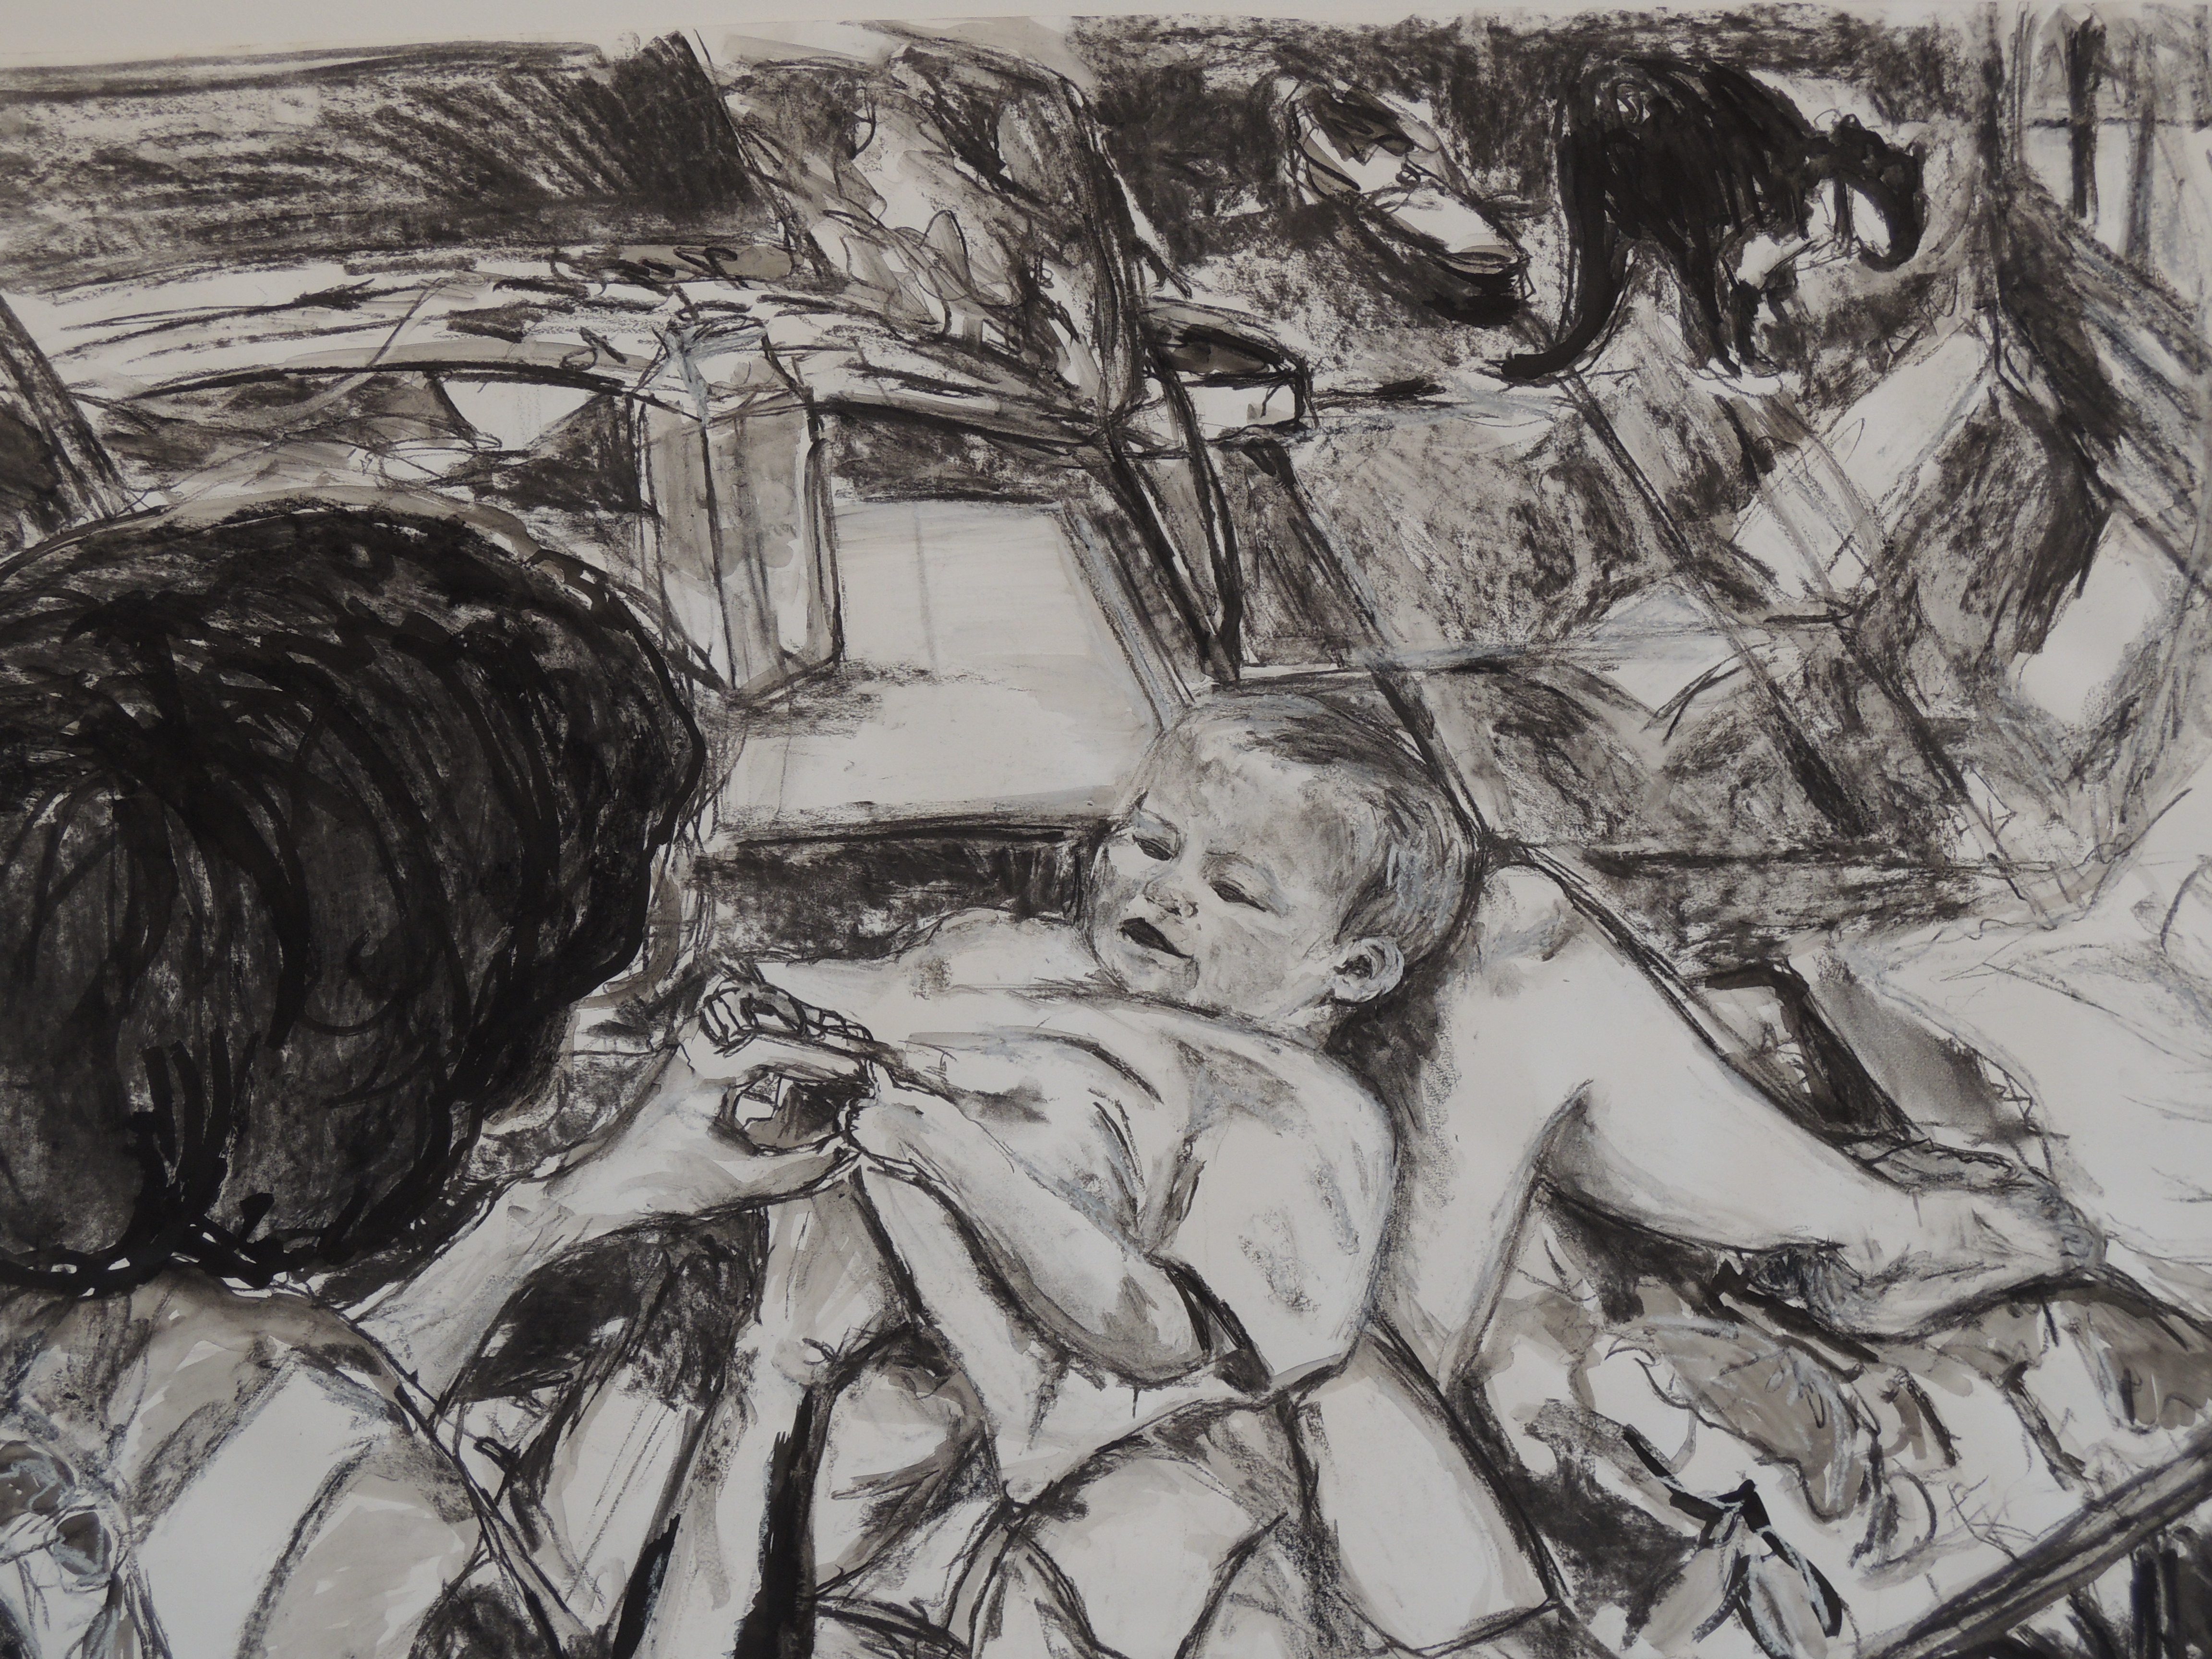 The Embracement, 100 x 70 cm, charcoal, white pastel and ink on paper, 2013